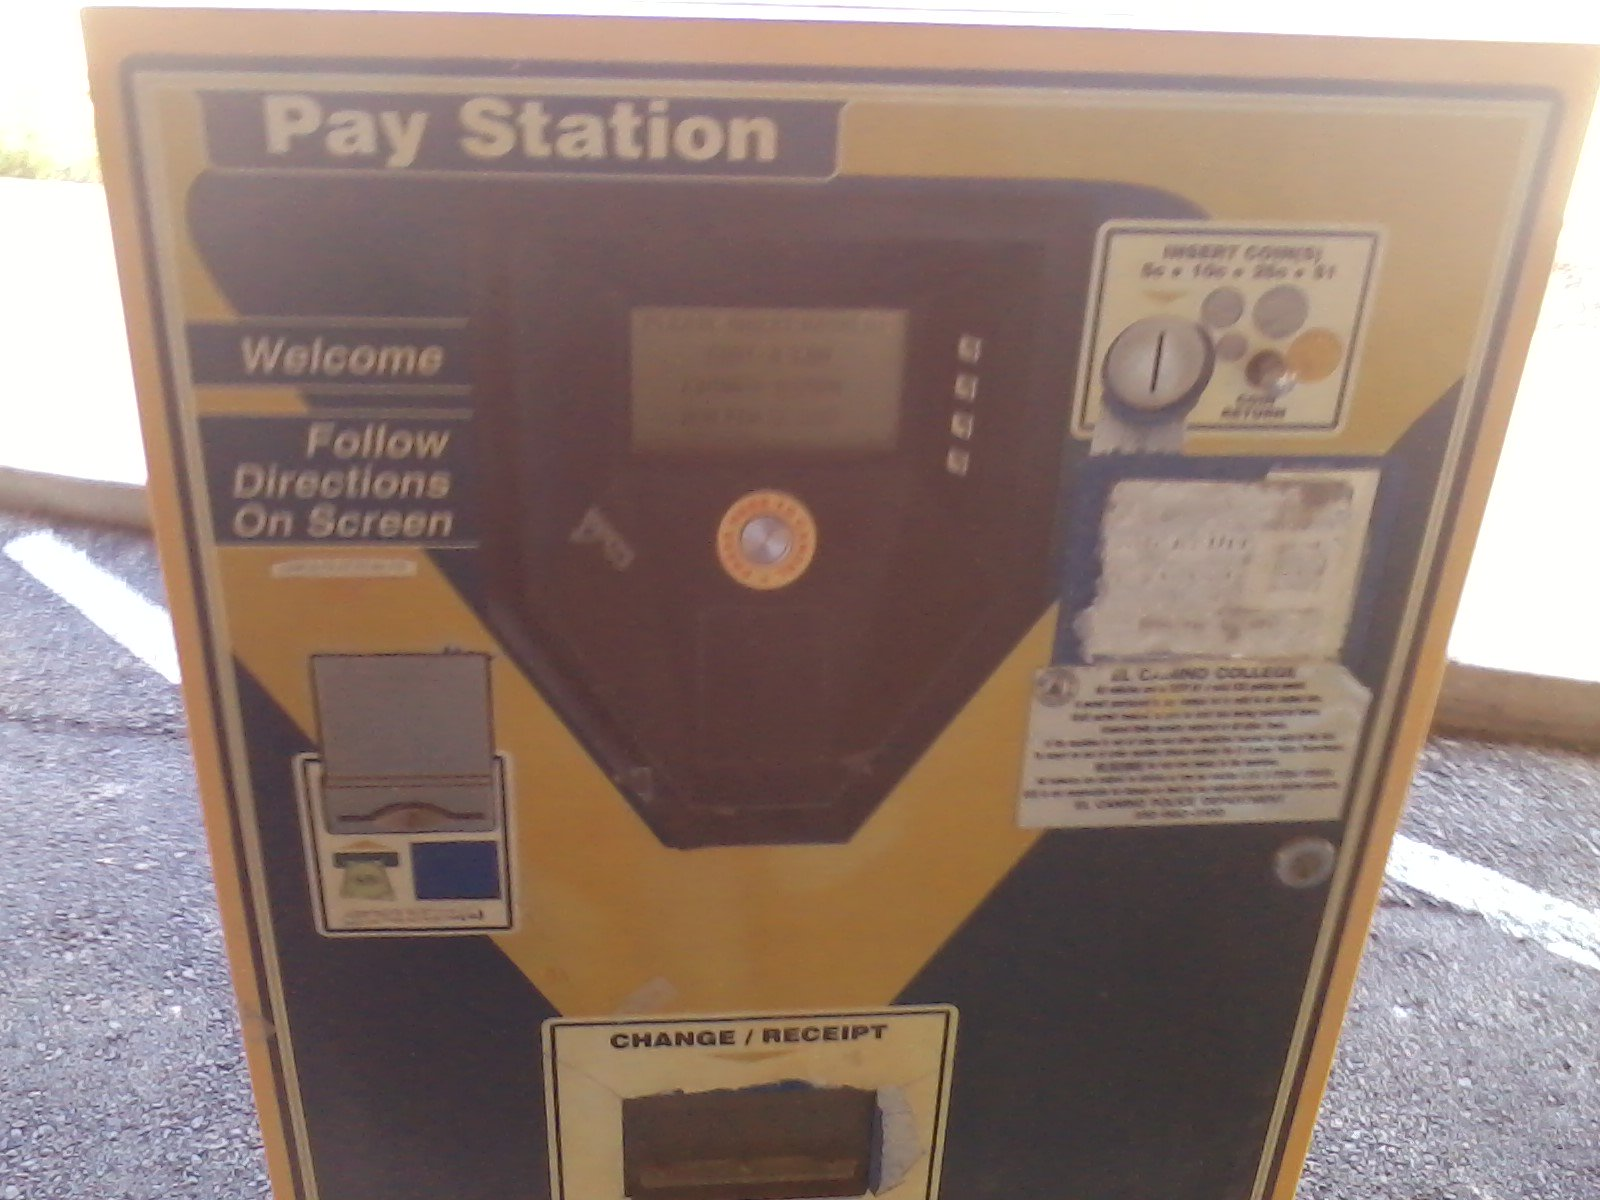 Another reminder about parking at ECC: These machines take exact change only. Three crisp $1 bills or coins required. #eccunion https://t.co/0pxwrFWg4H